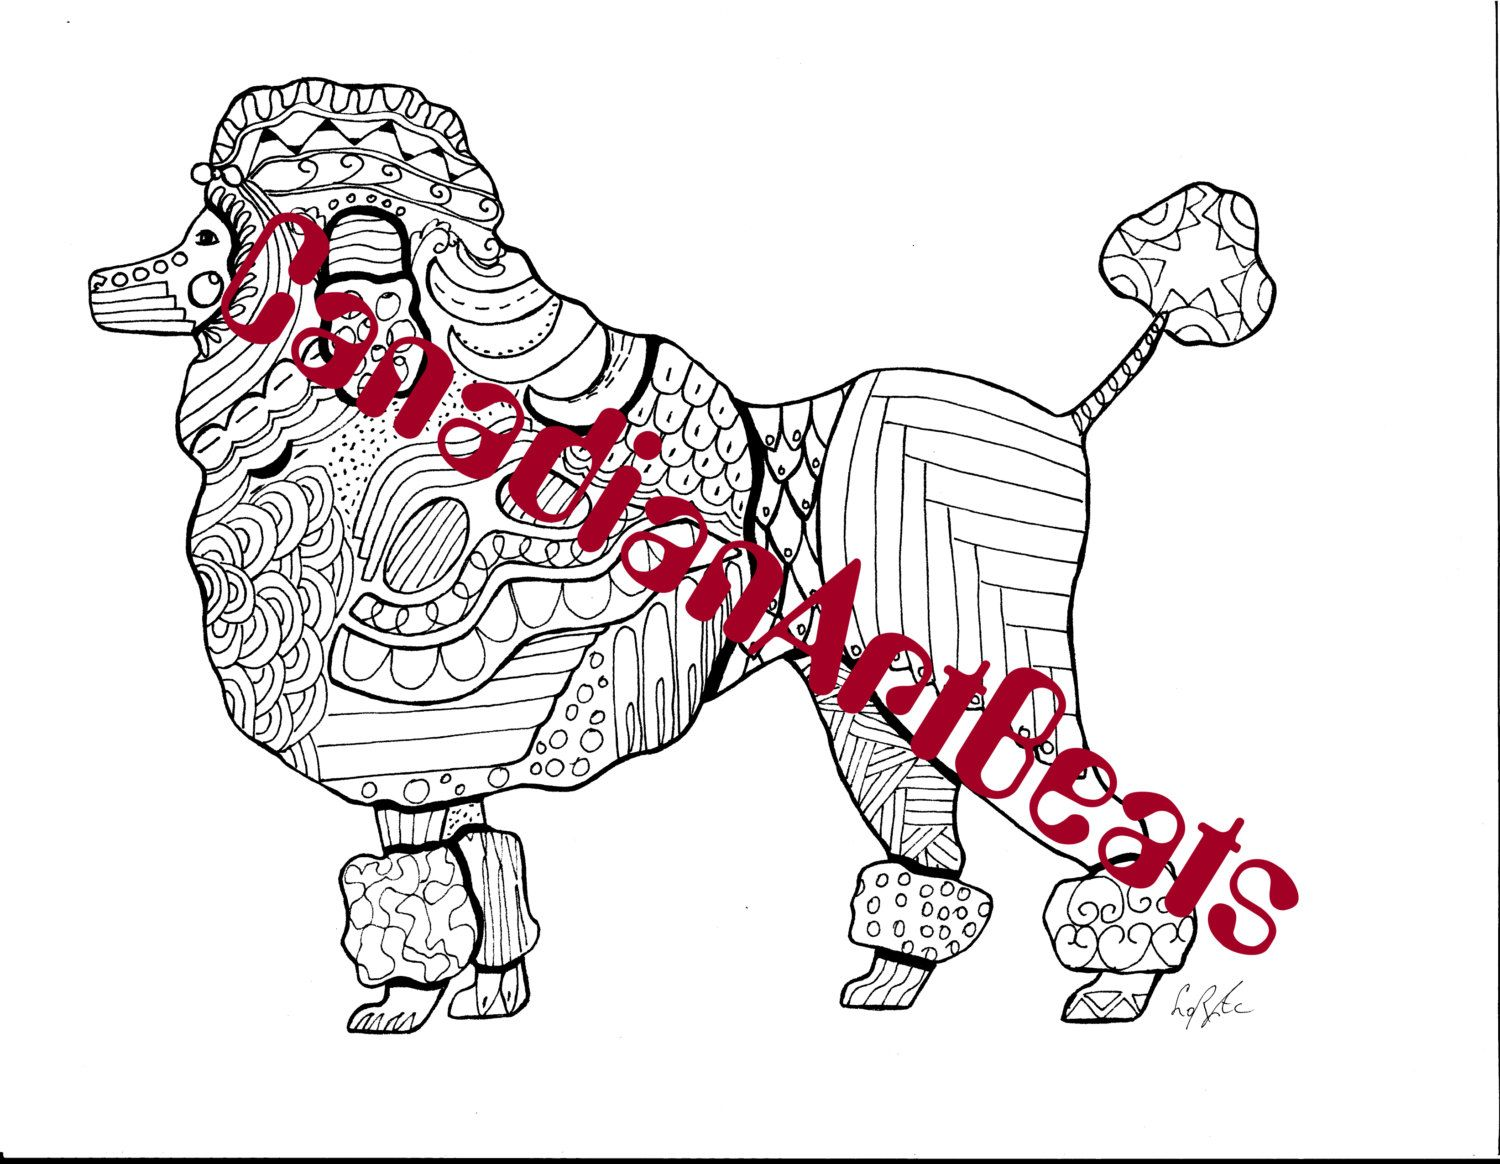 Downloadable Poodle Dog Zentangle Inspired Coloring Page By CanadianArtBeats On Etsy